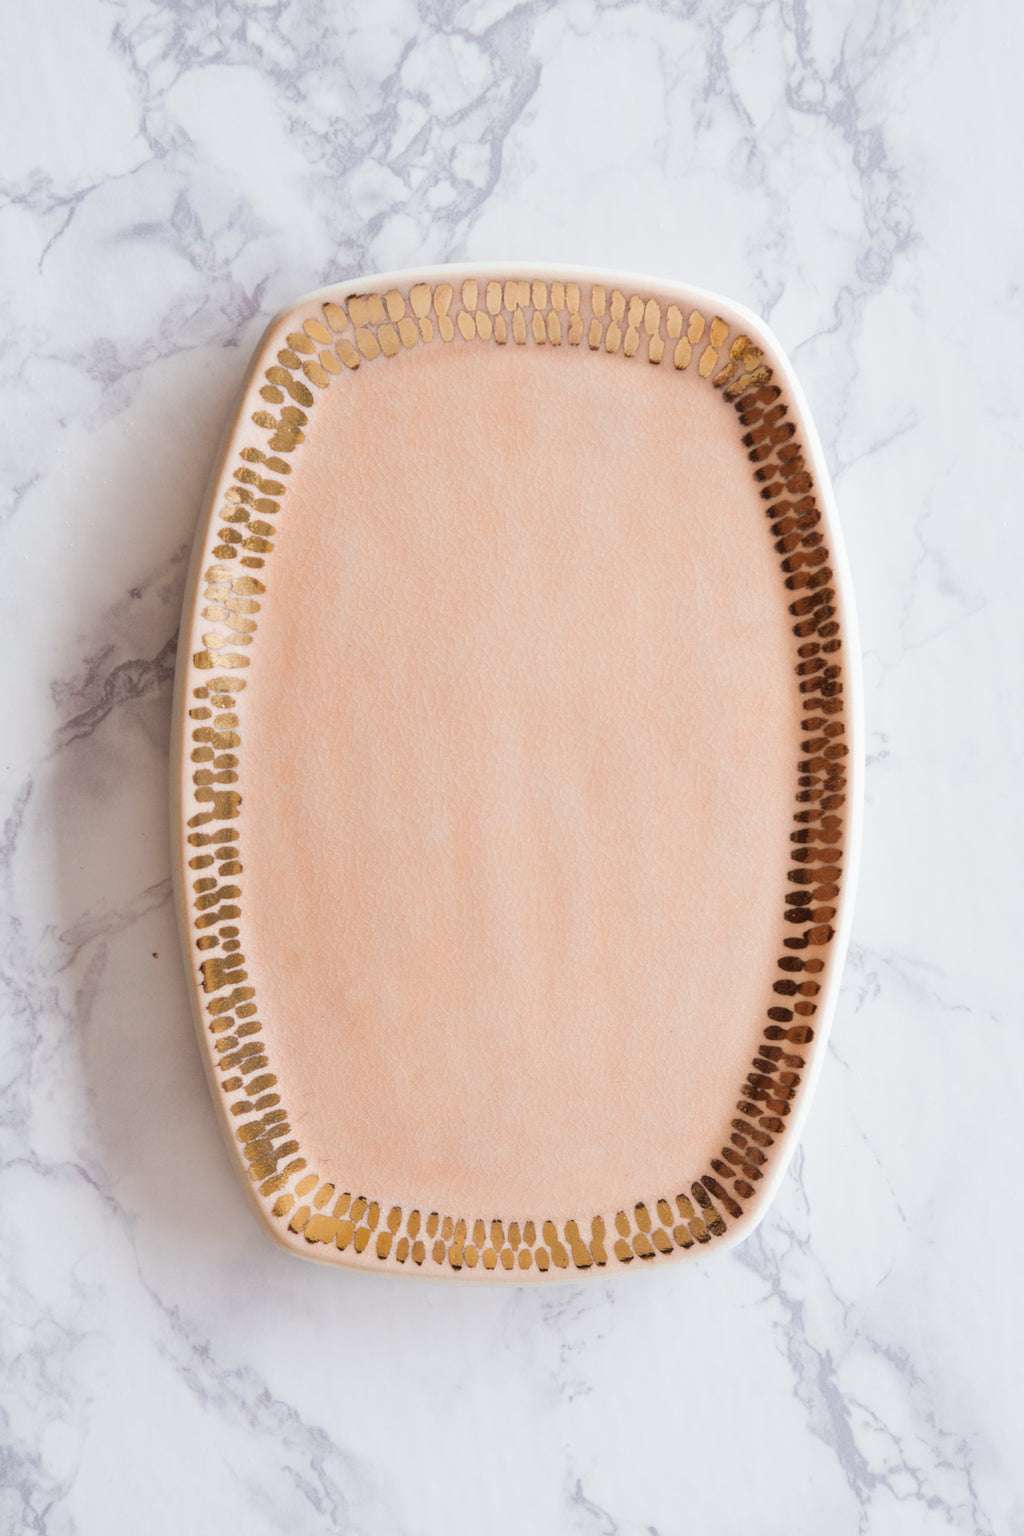 Blush & Gold Tray - The Object Enthusiast